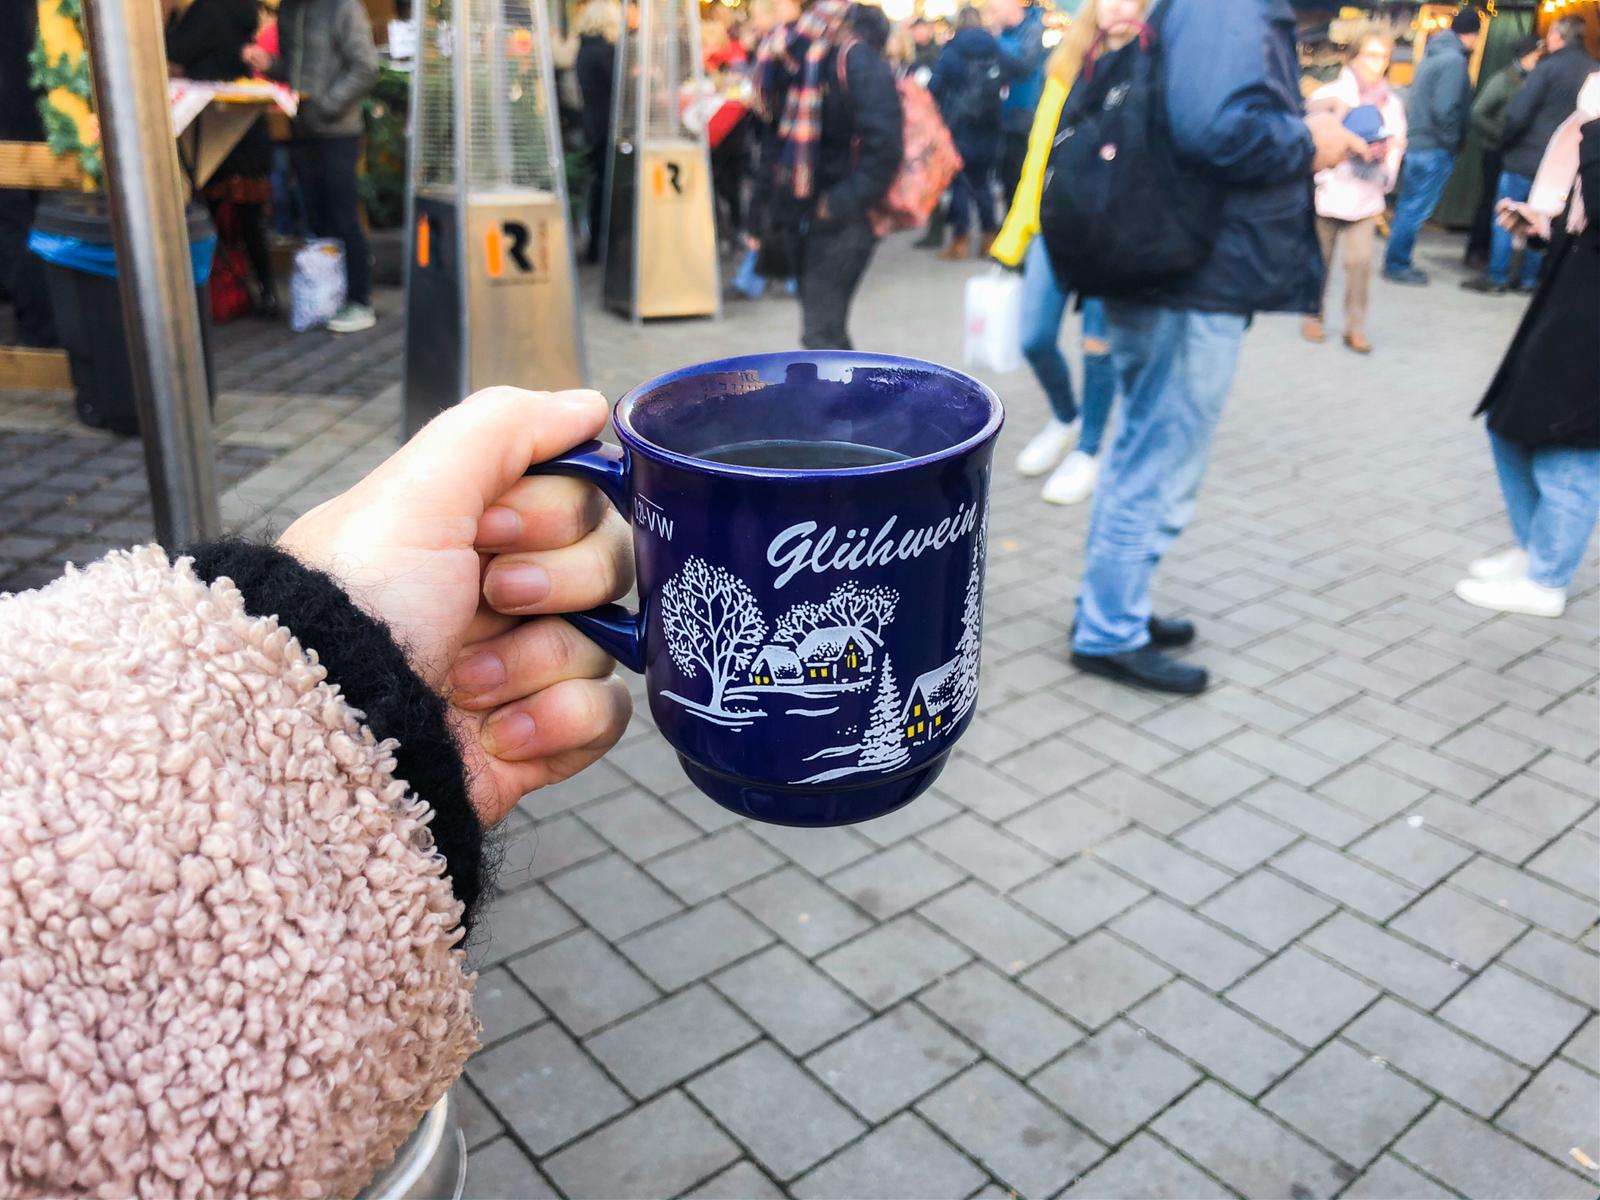 Gluhwein in Kleef